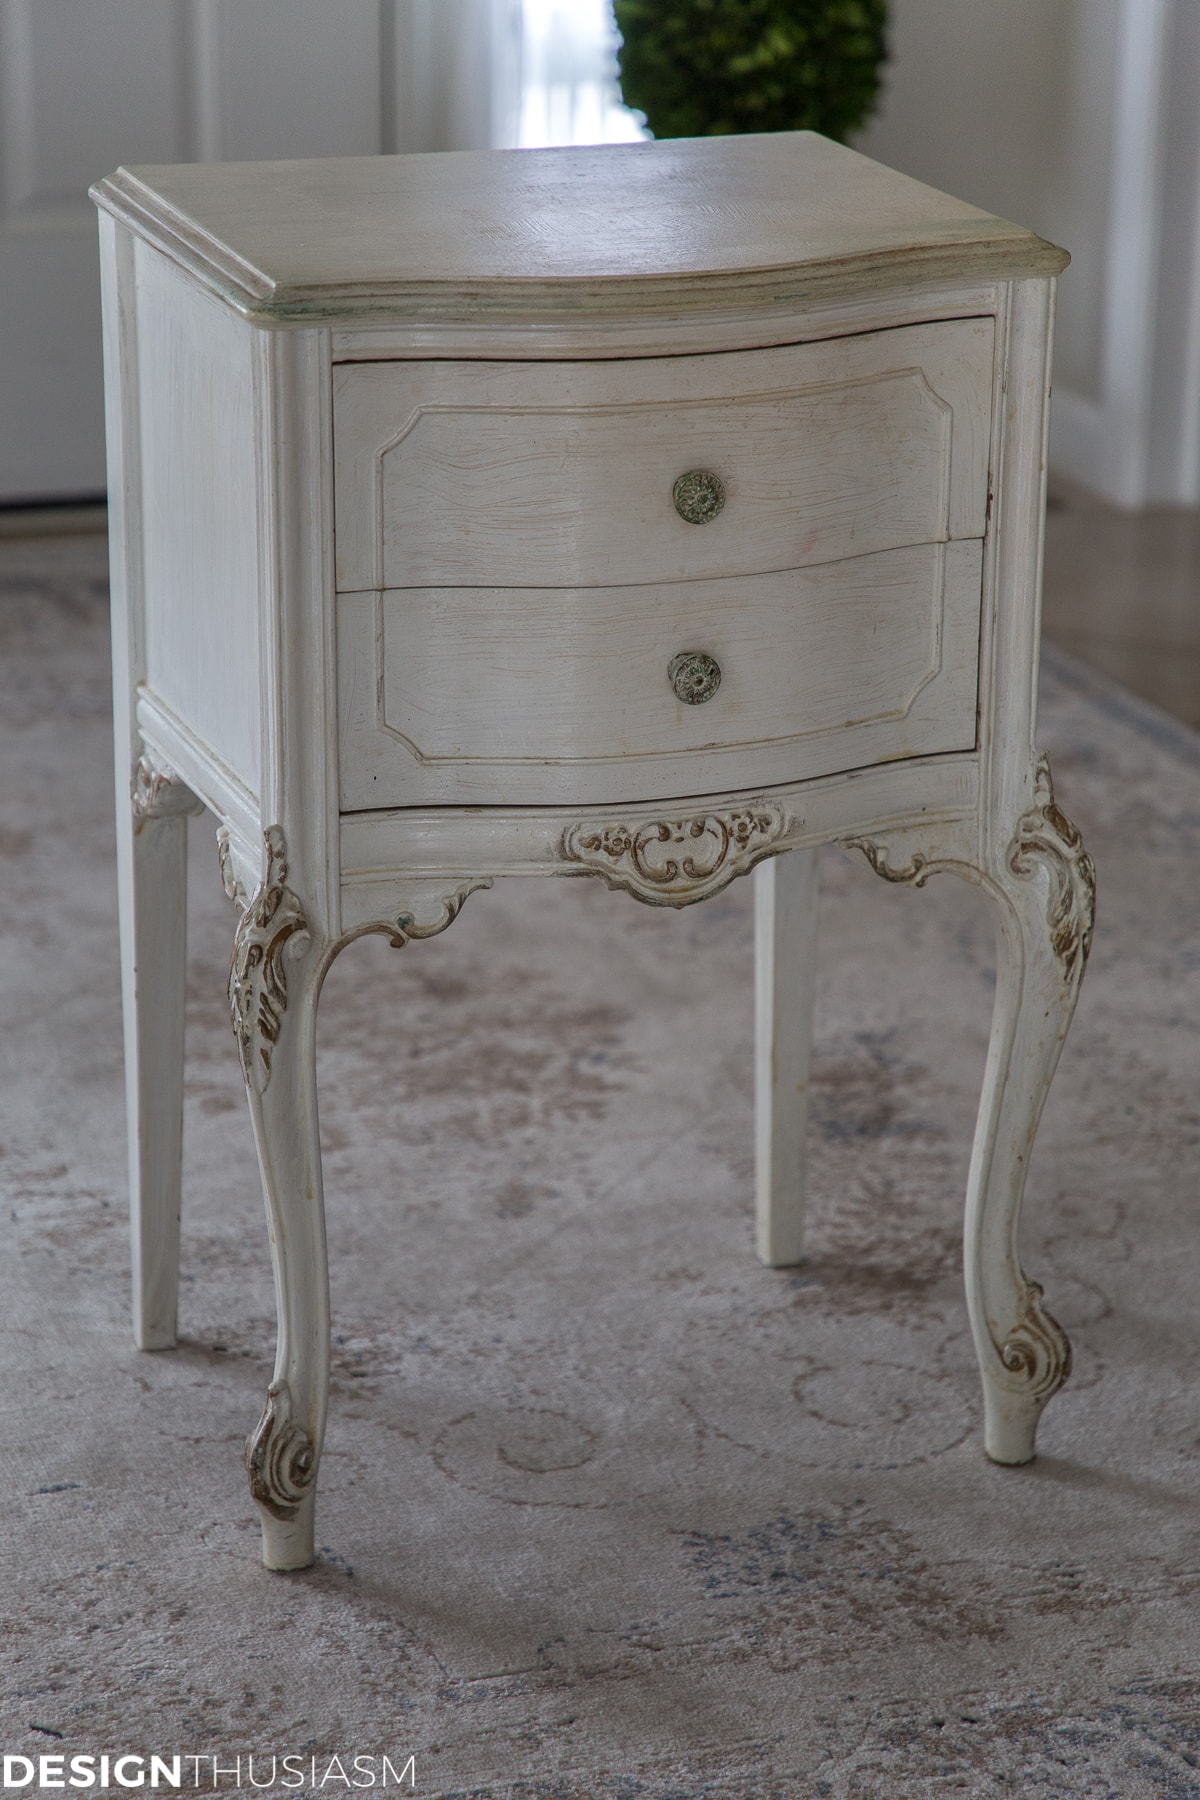 DIY Chalk Painted Table Makeover - Easy Step by Step Tutorial